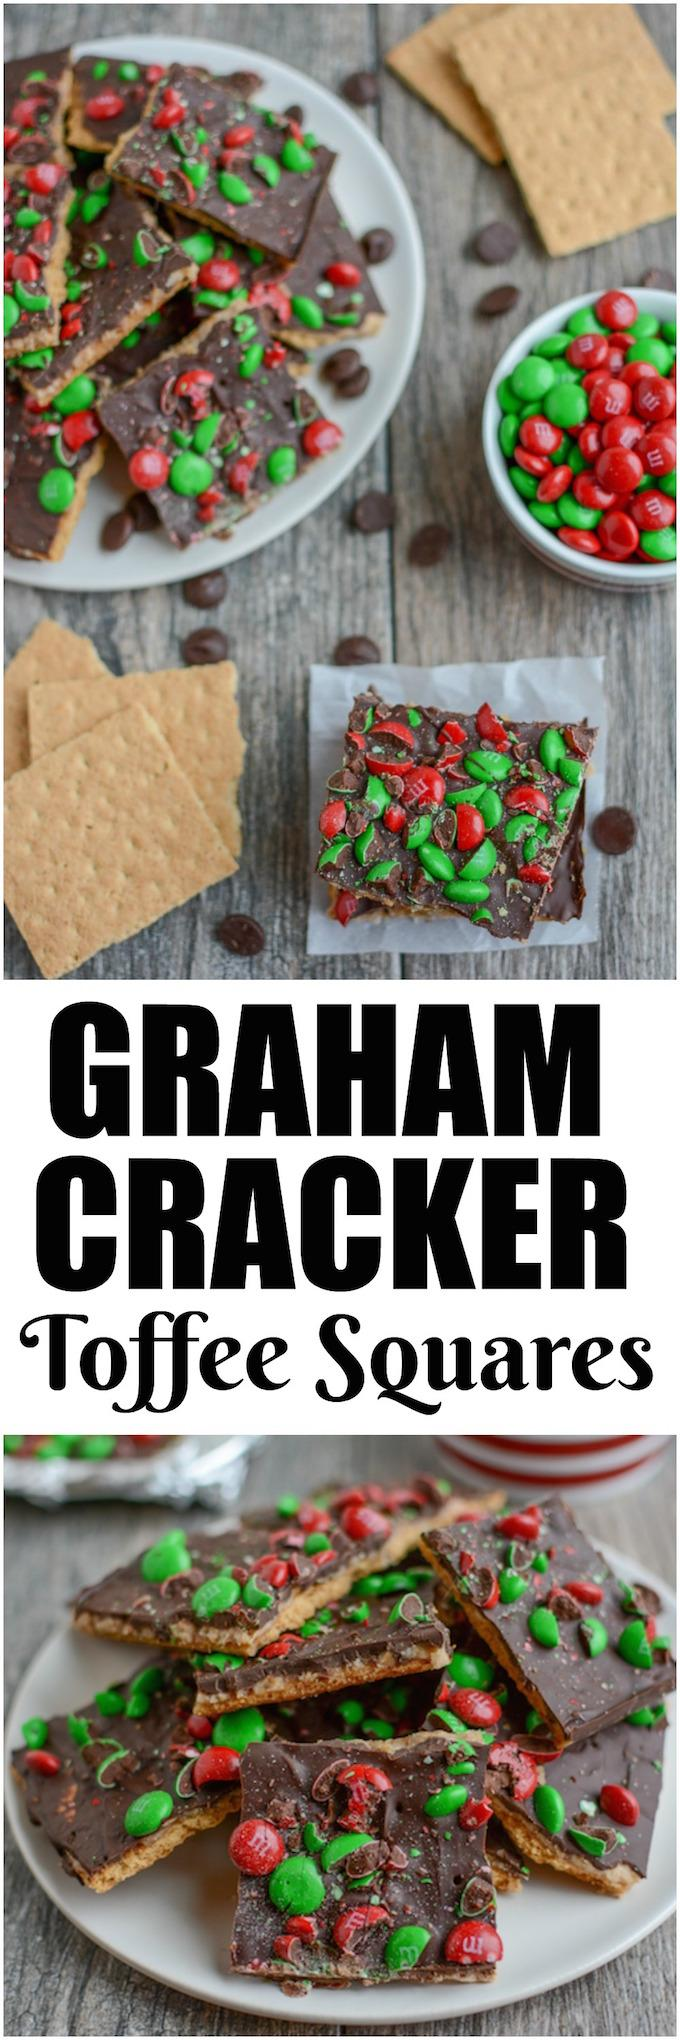 This Graham Cracker Toffee Squares recipe is a Christmas cookie tray staple! Everyone will love this classic dessert and it's the perfect quick, easy holiday treat!